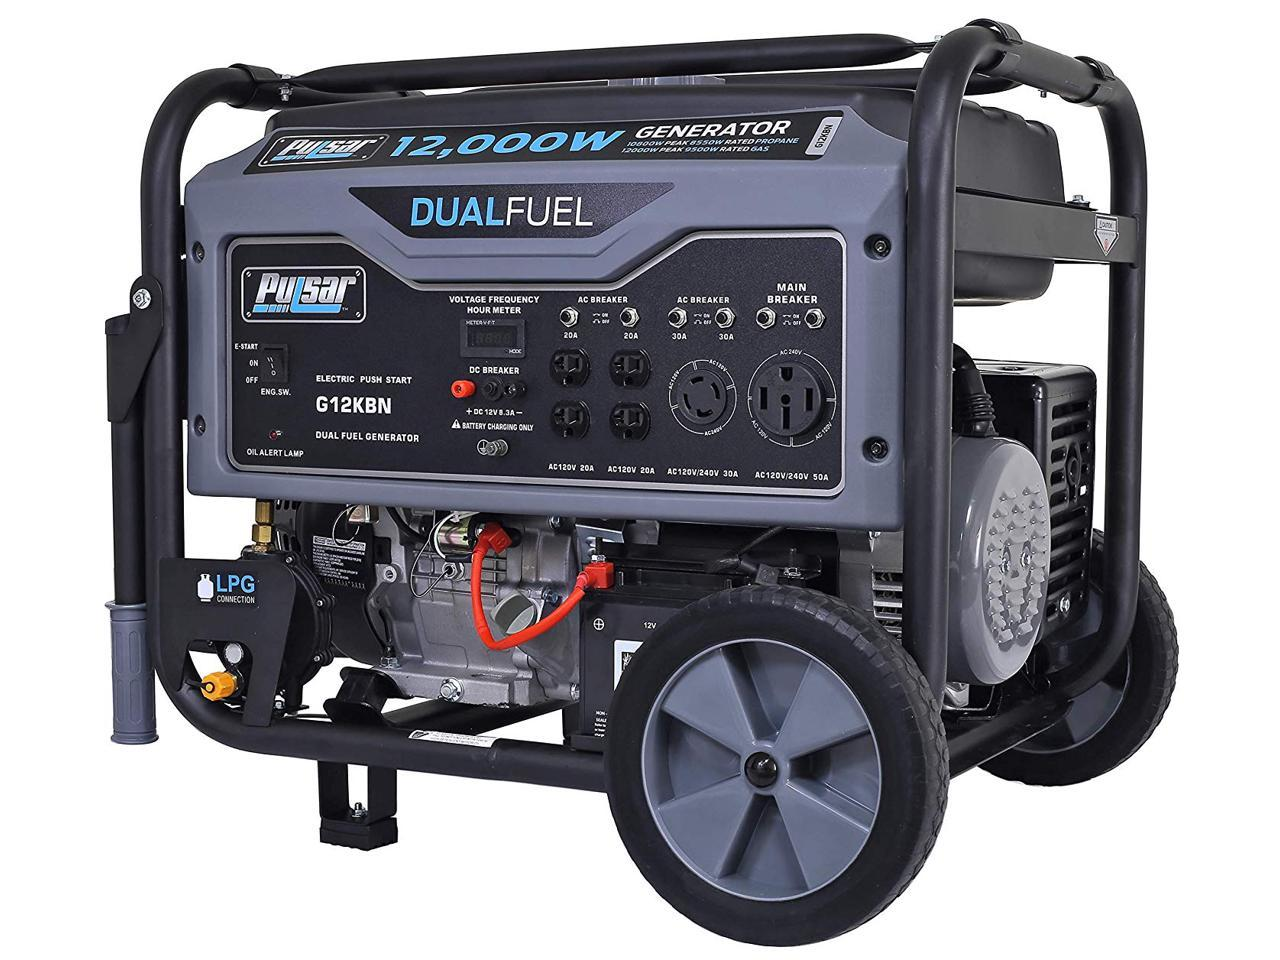 Pulsar G12KBN 12000W Heavy Duty Portable Dual Fuel Generator, 9500 Rated Watts & 12000 Peak Watts, CARB Compliant